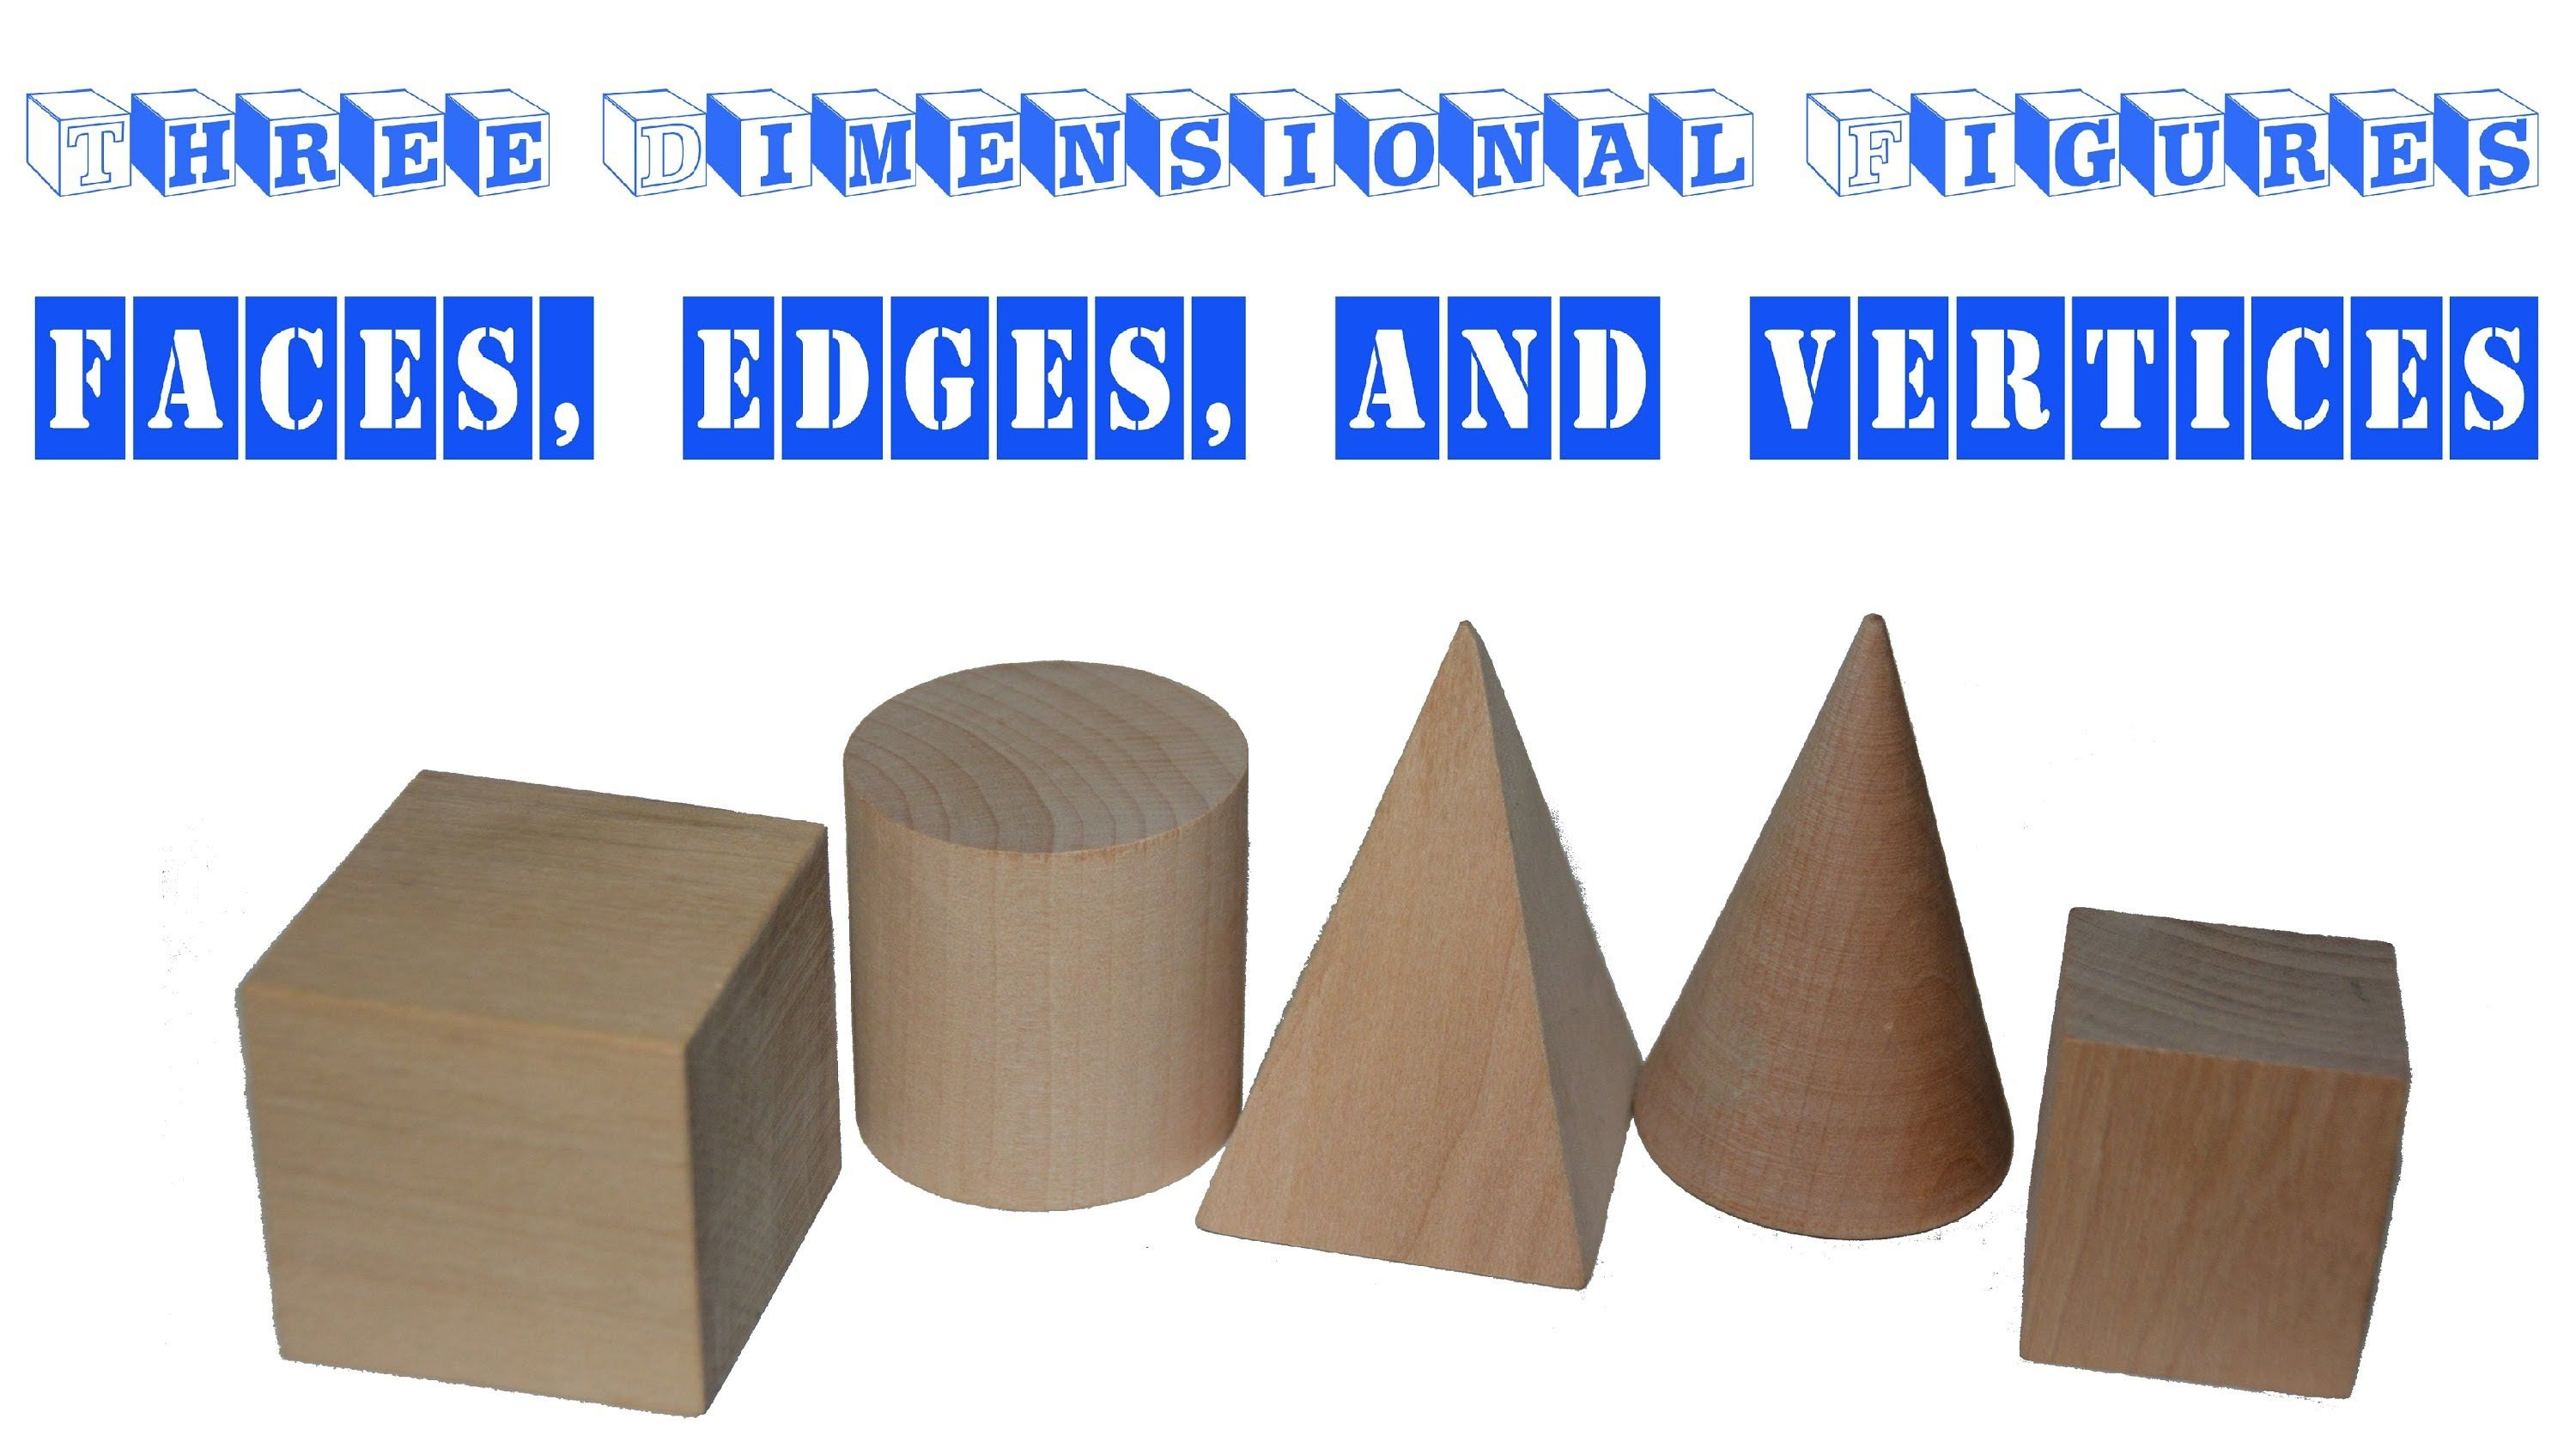 Learning about Faces, Edges, and Vertices - Three